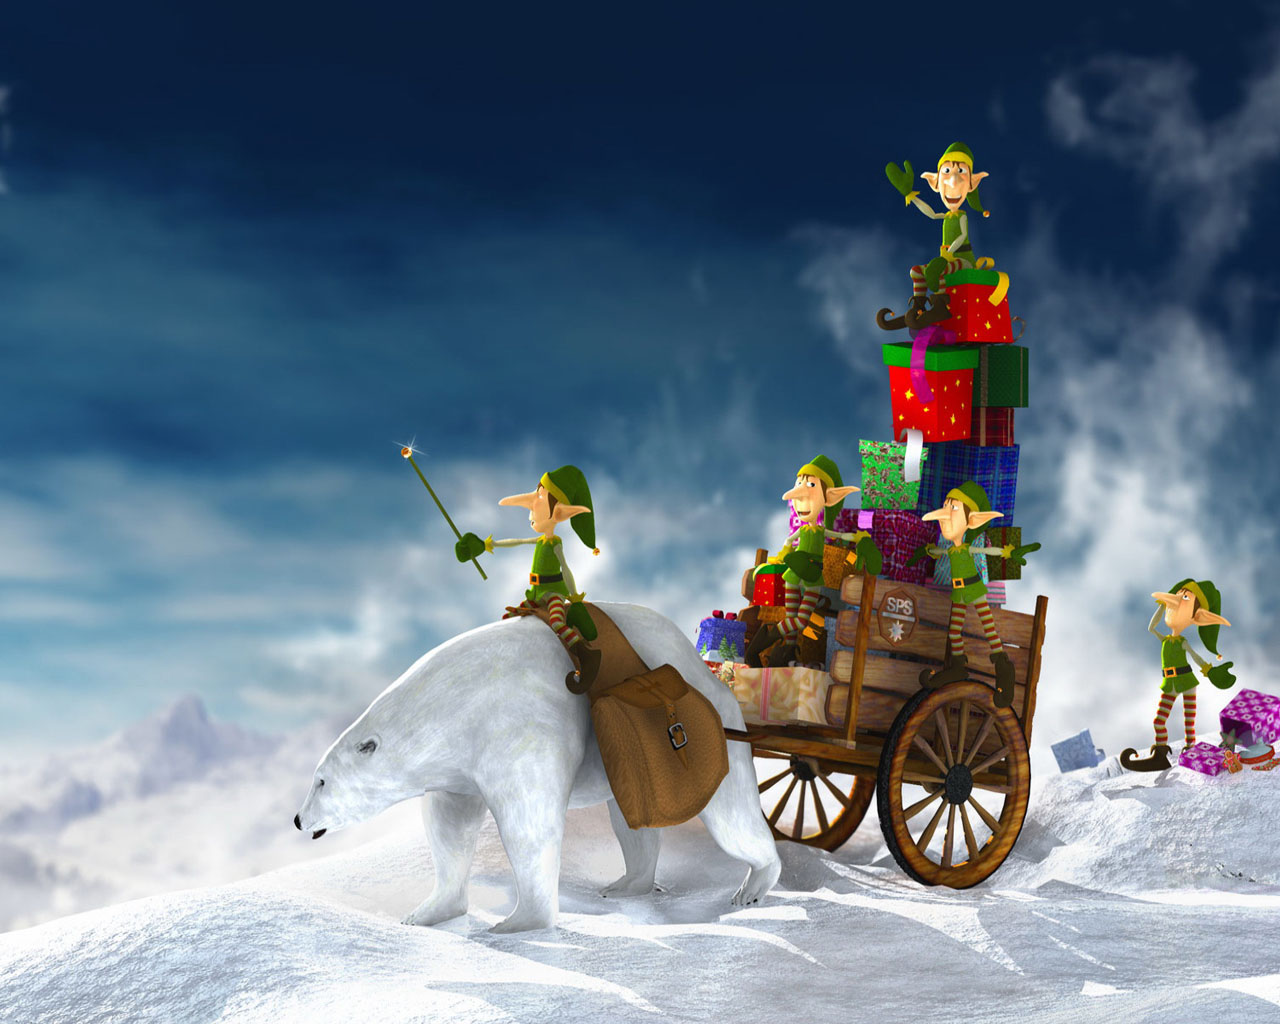 animated wallpaper download,carriage,vehicle,chariot,horse and buggy,animation